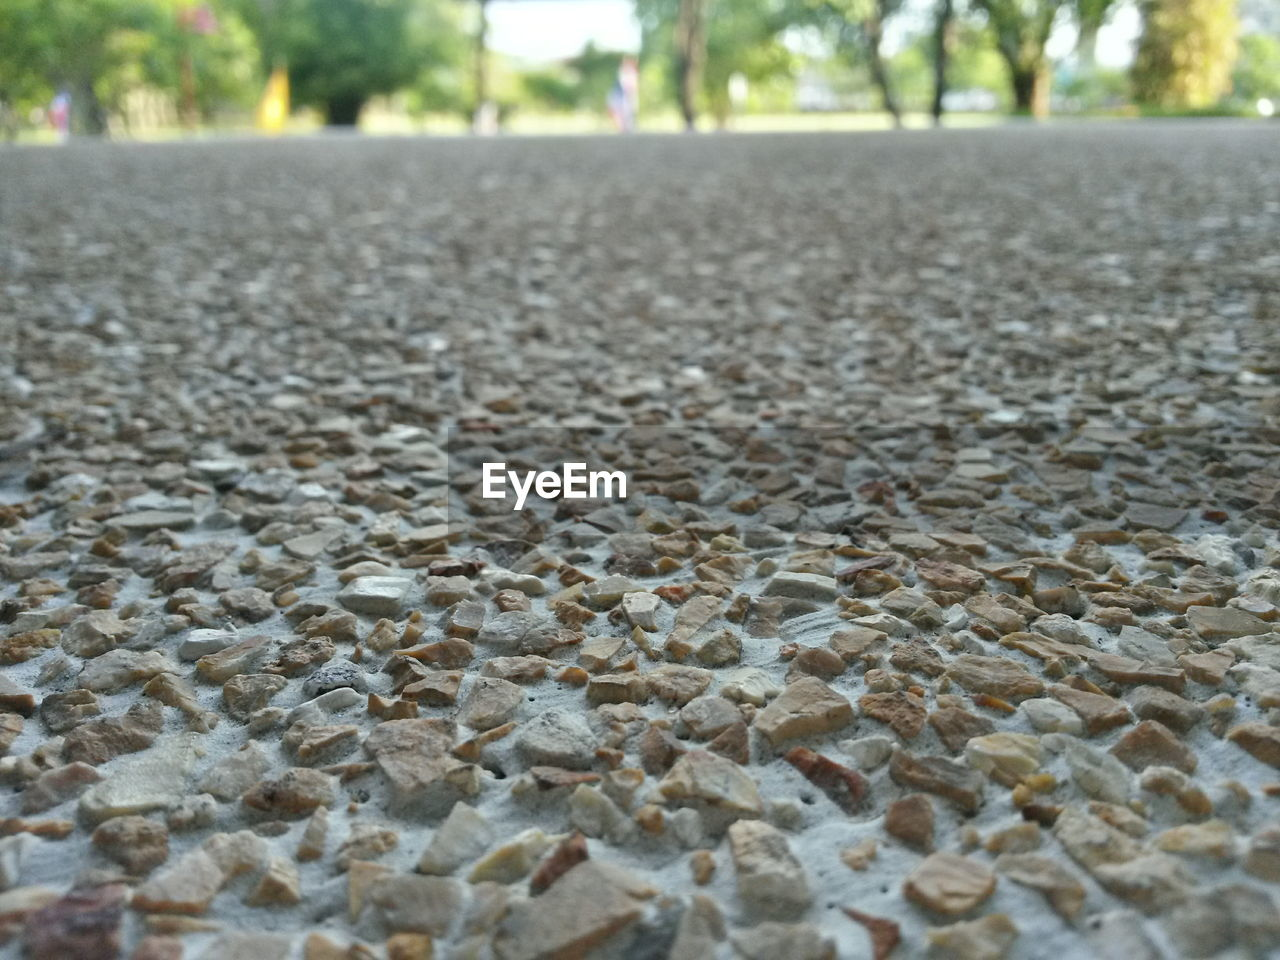 surface level, day, focus on foreground, no people, textured, outdoors, nature, close-up, tree